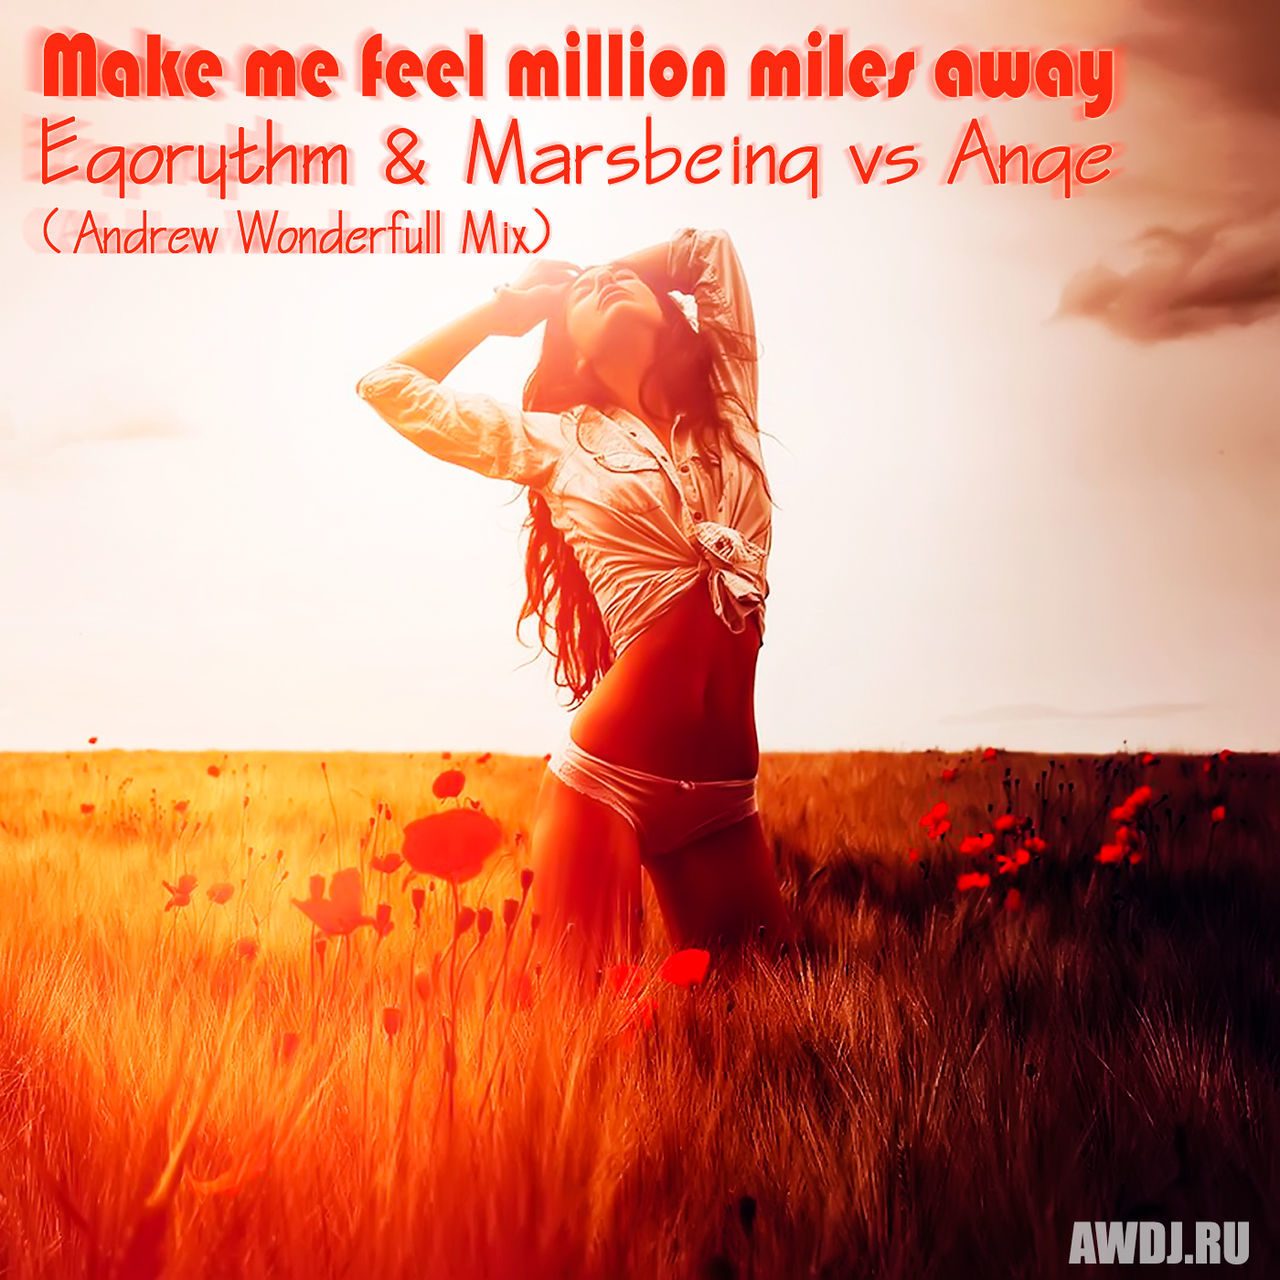 http://awdj.ru/category/mixes/remixes-mashups/ AndrewWonderfull Awdj Awtrance Cover Mashup Mashups Mix Music Progressive Trance Remixes Trance Uplifting Trance Version Vocal Trance